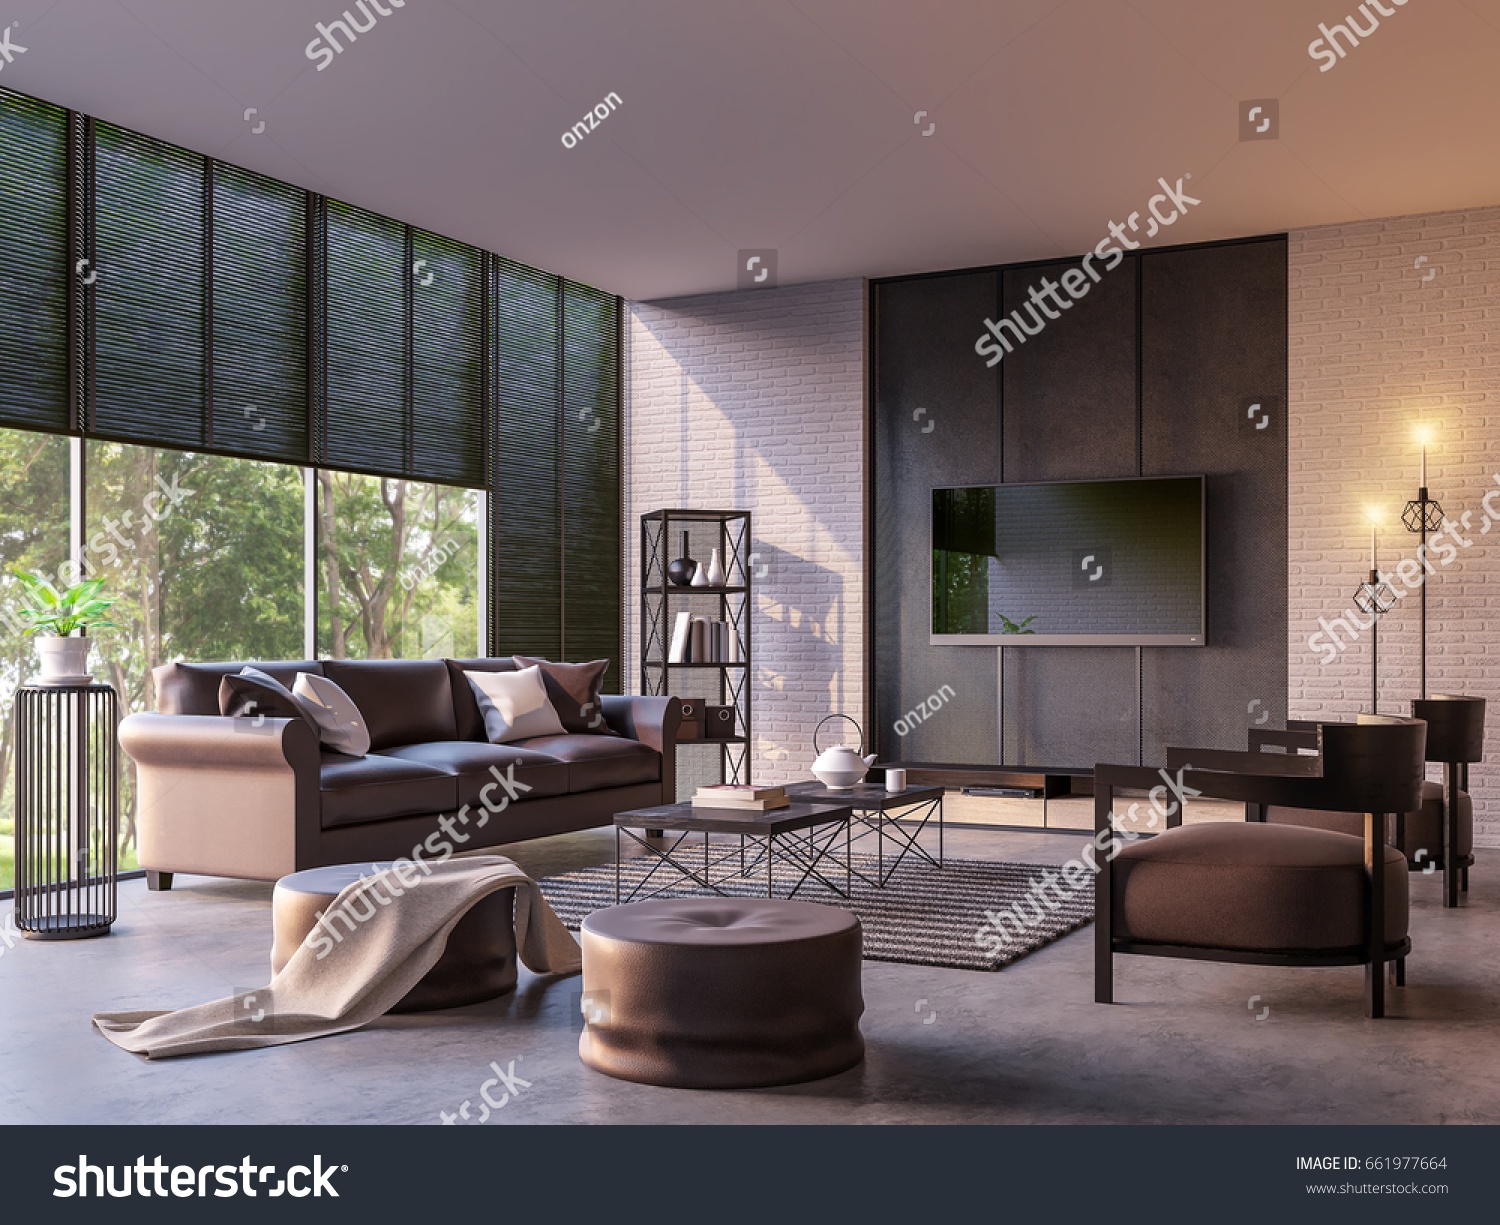 Modern Loft Living Room With Nature View 3d Rendering Image Furnished With  Dark Brown Leather And